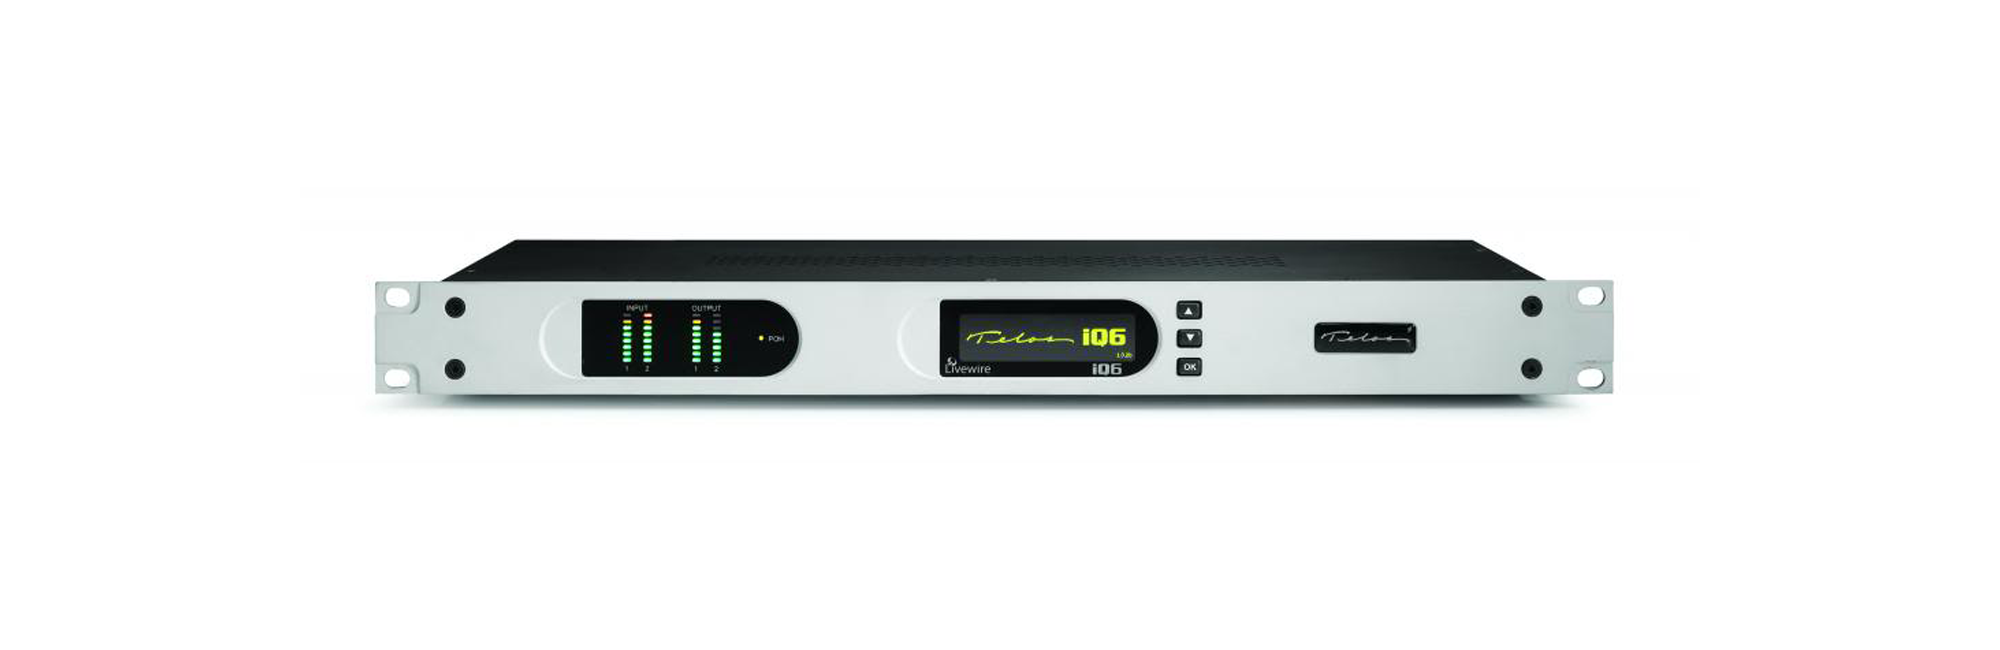 Telos Alliance - iQ6 Six-Line POTS Telco Gateway - 305broadcast